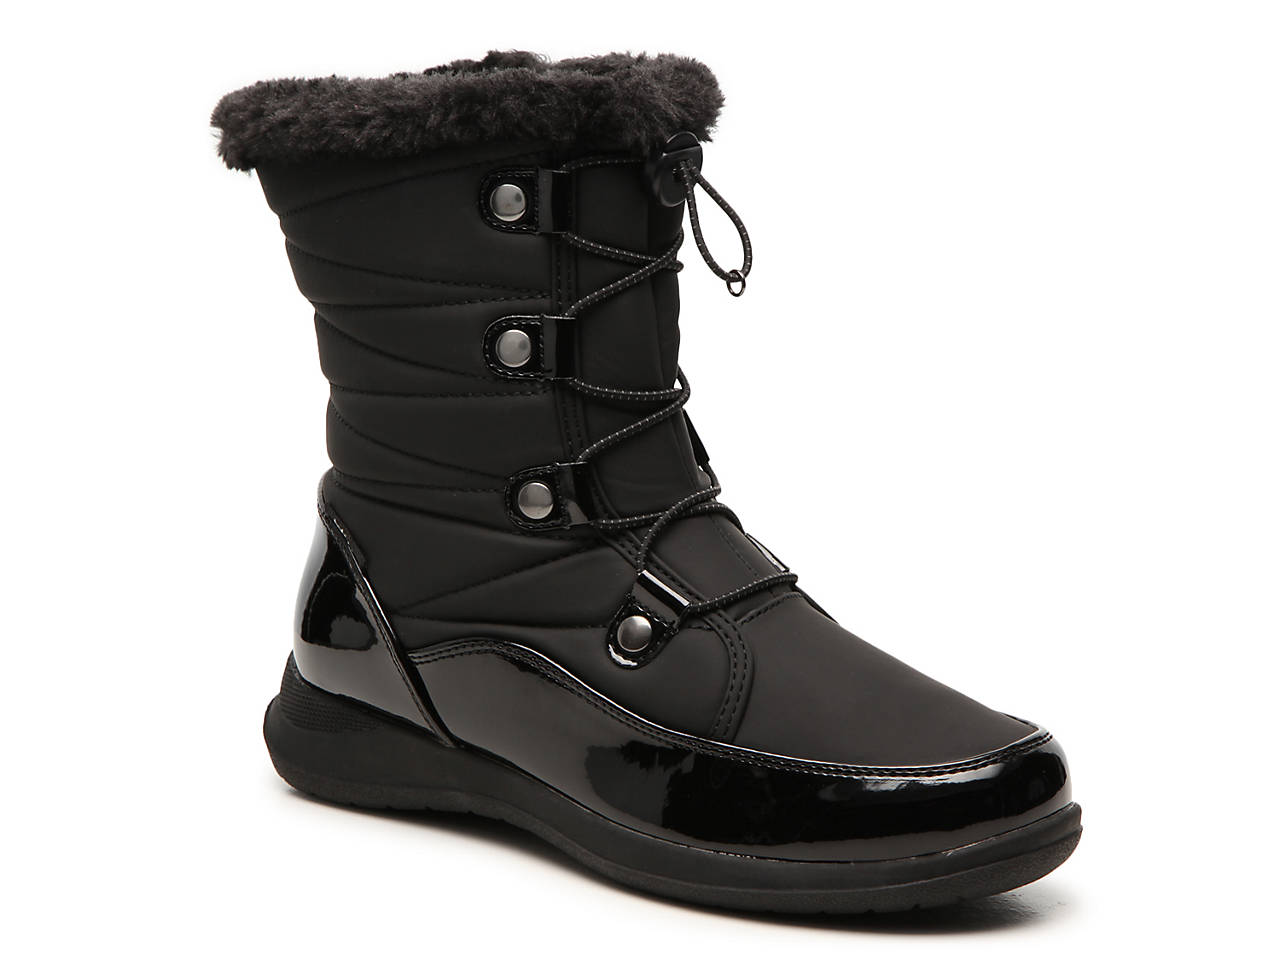 Cody Snow Boot by Totes